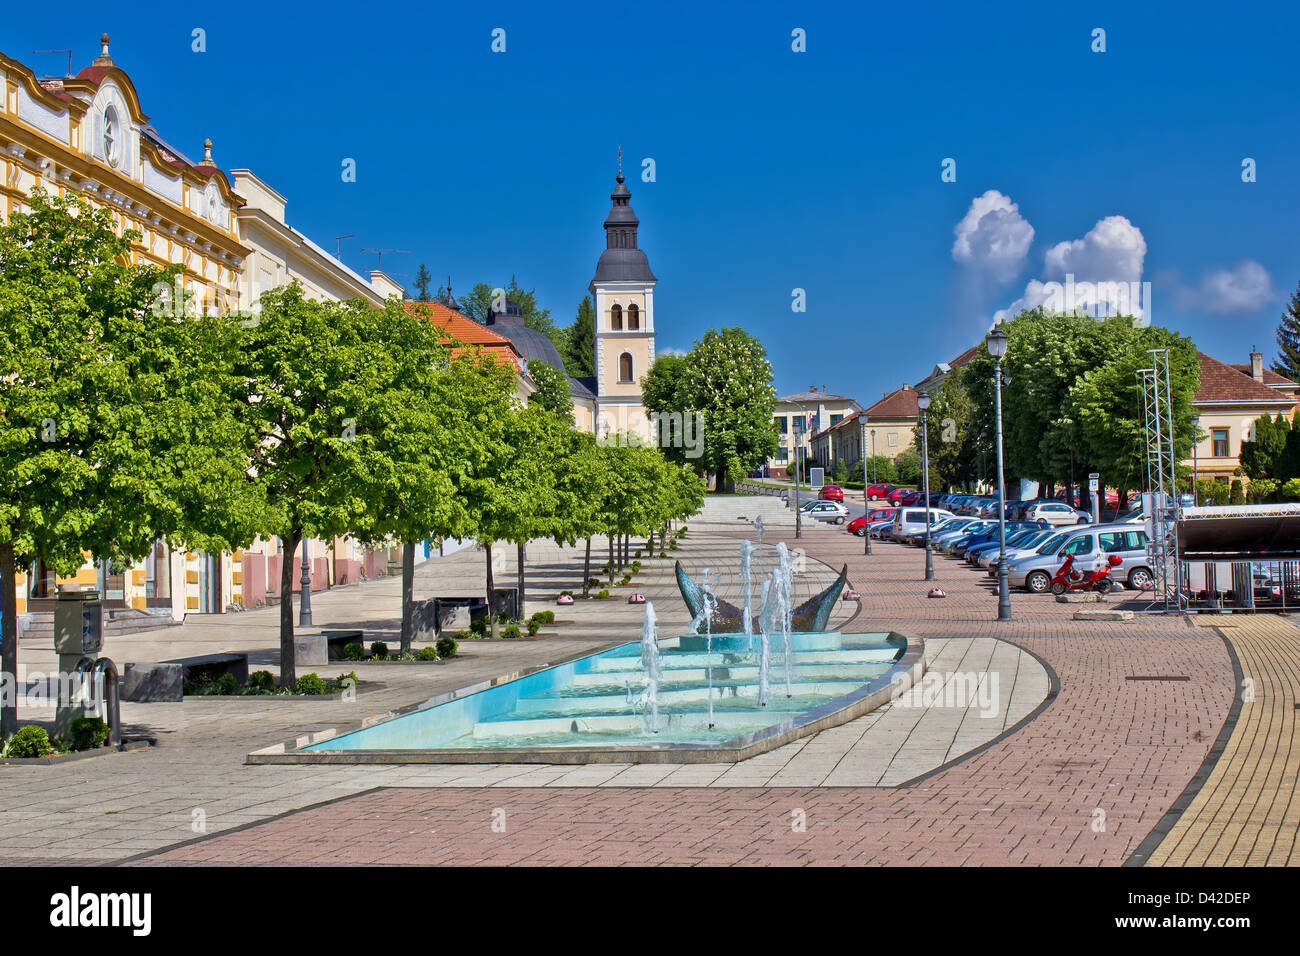 Town of Daruvar colorful main square, Croatia - Stock Image